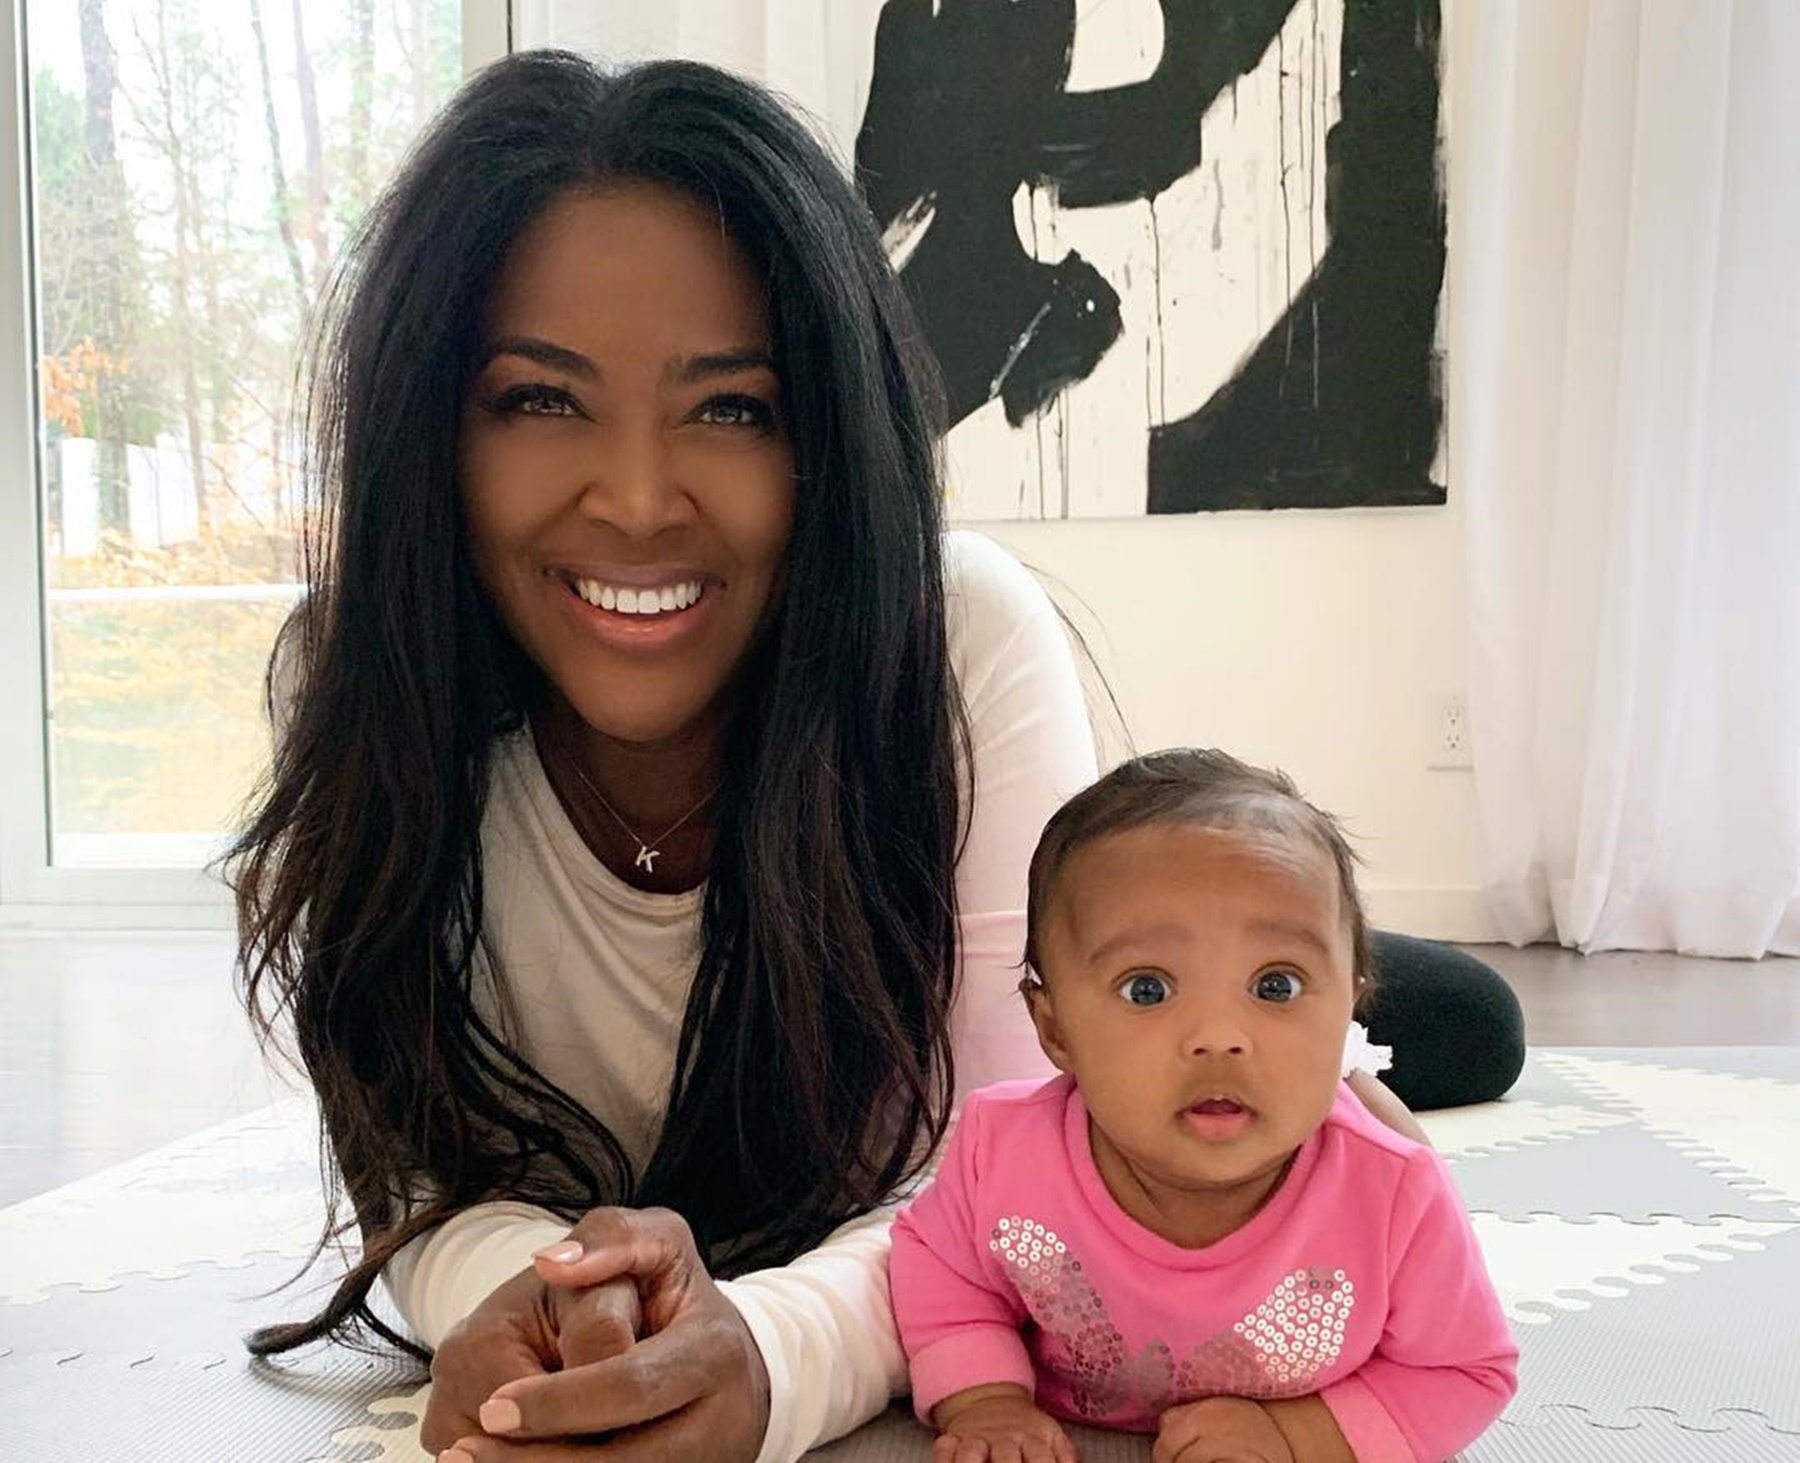 Kris Jenner, Watch Out! Kenya Moore Is Already Teaching Her Baby Girl, Brooklyn How To Be A Boss - The Miracle Baby Seems To Love It By The Way She's Showing Off Her 'Millionaire Smile'